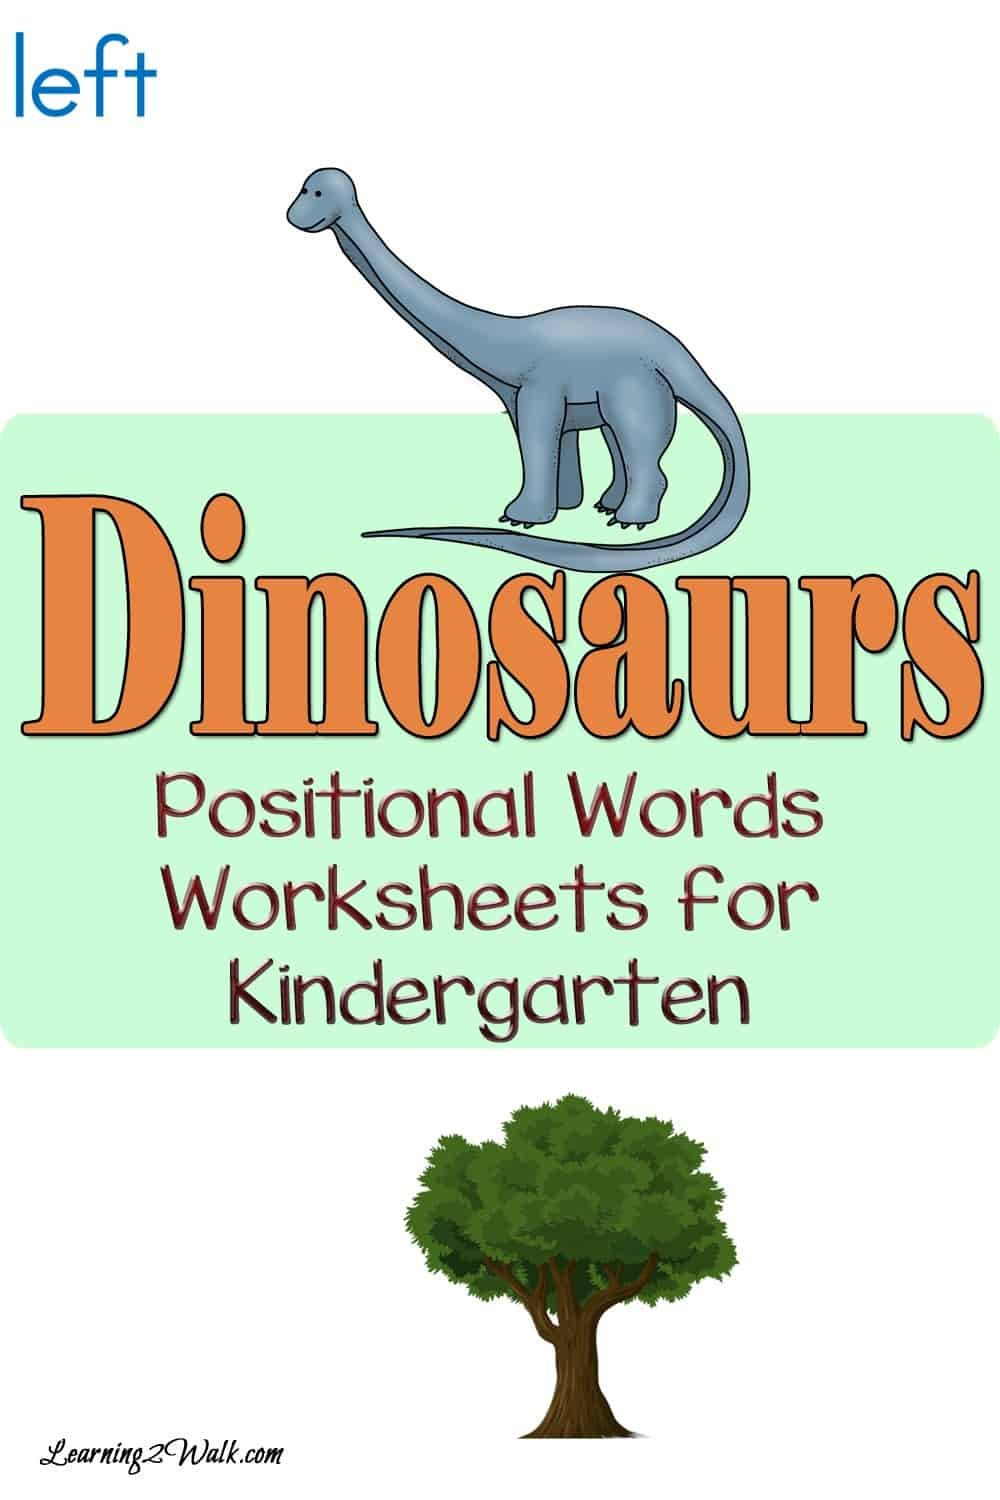 Positional Words Worksheets for Preschool Dinosaurs Positional Words Worksheets for Kindergarten